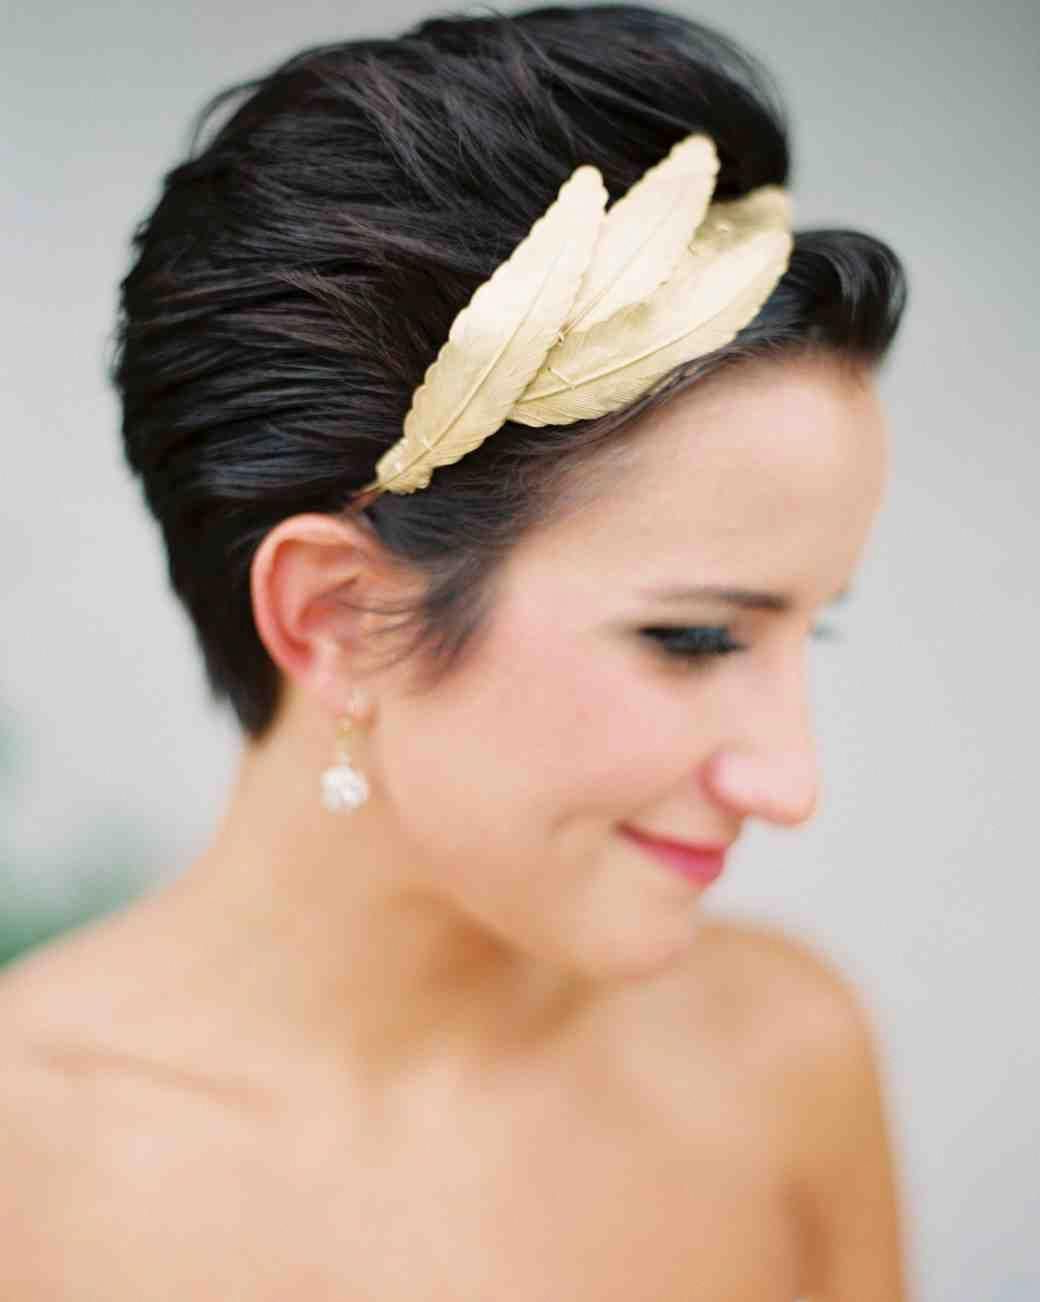 Wedding And Bridal For Preferred Short Wedding Hairstyles With A Swanky Headband (View 2 of 20)